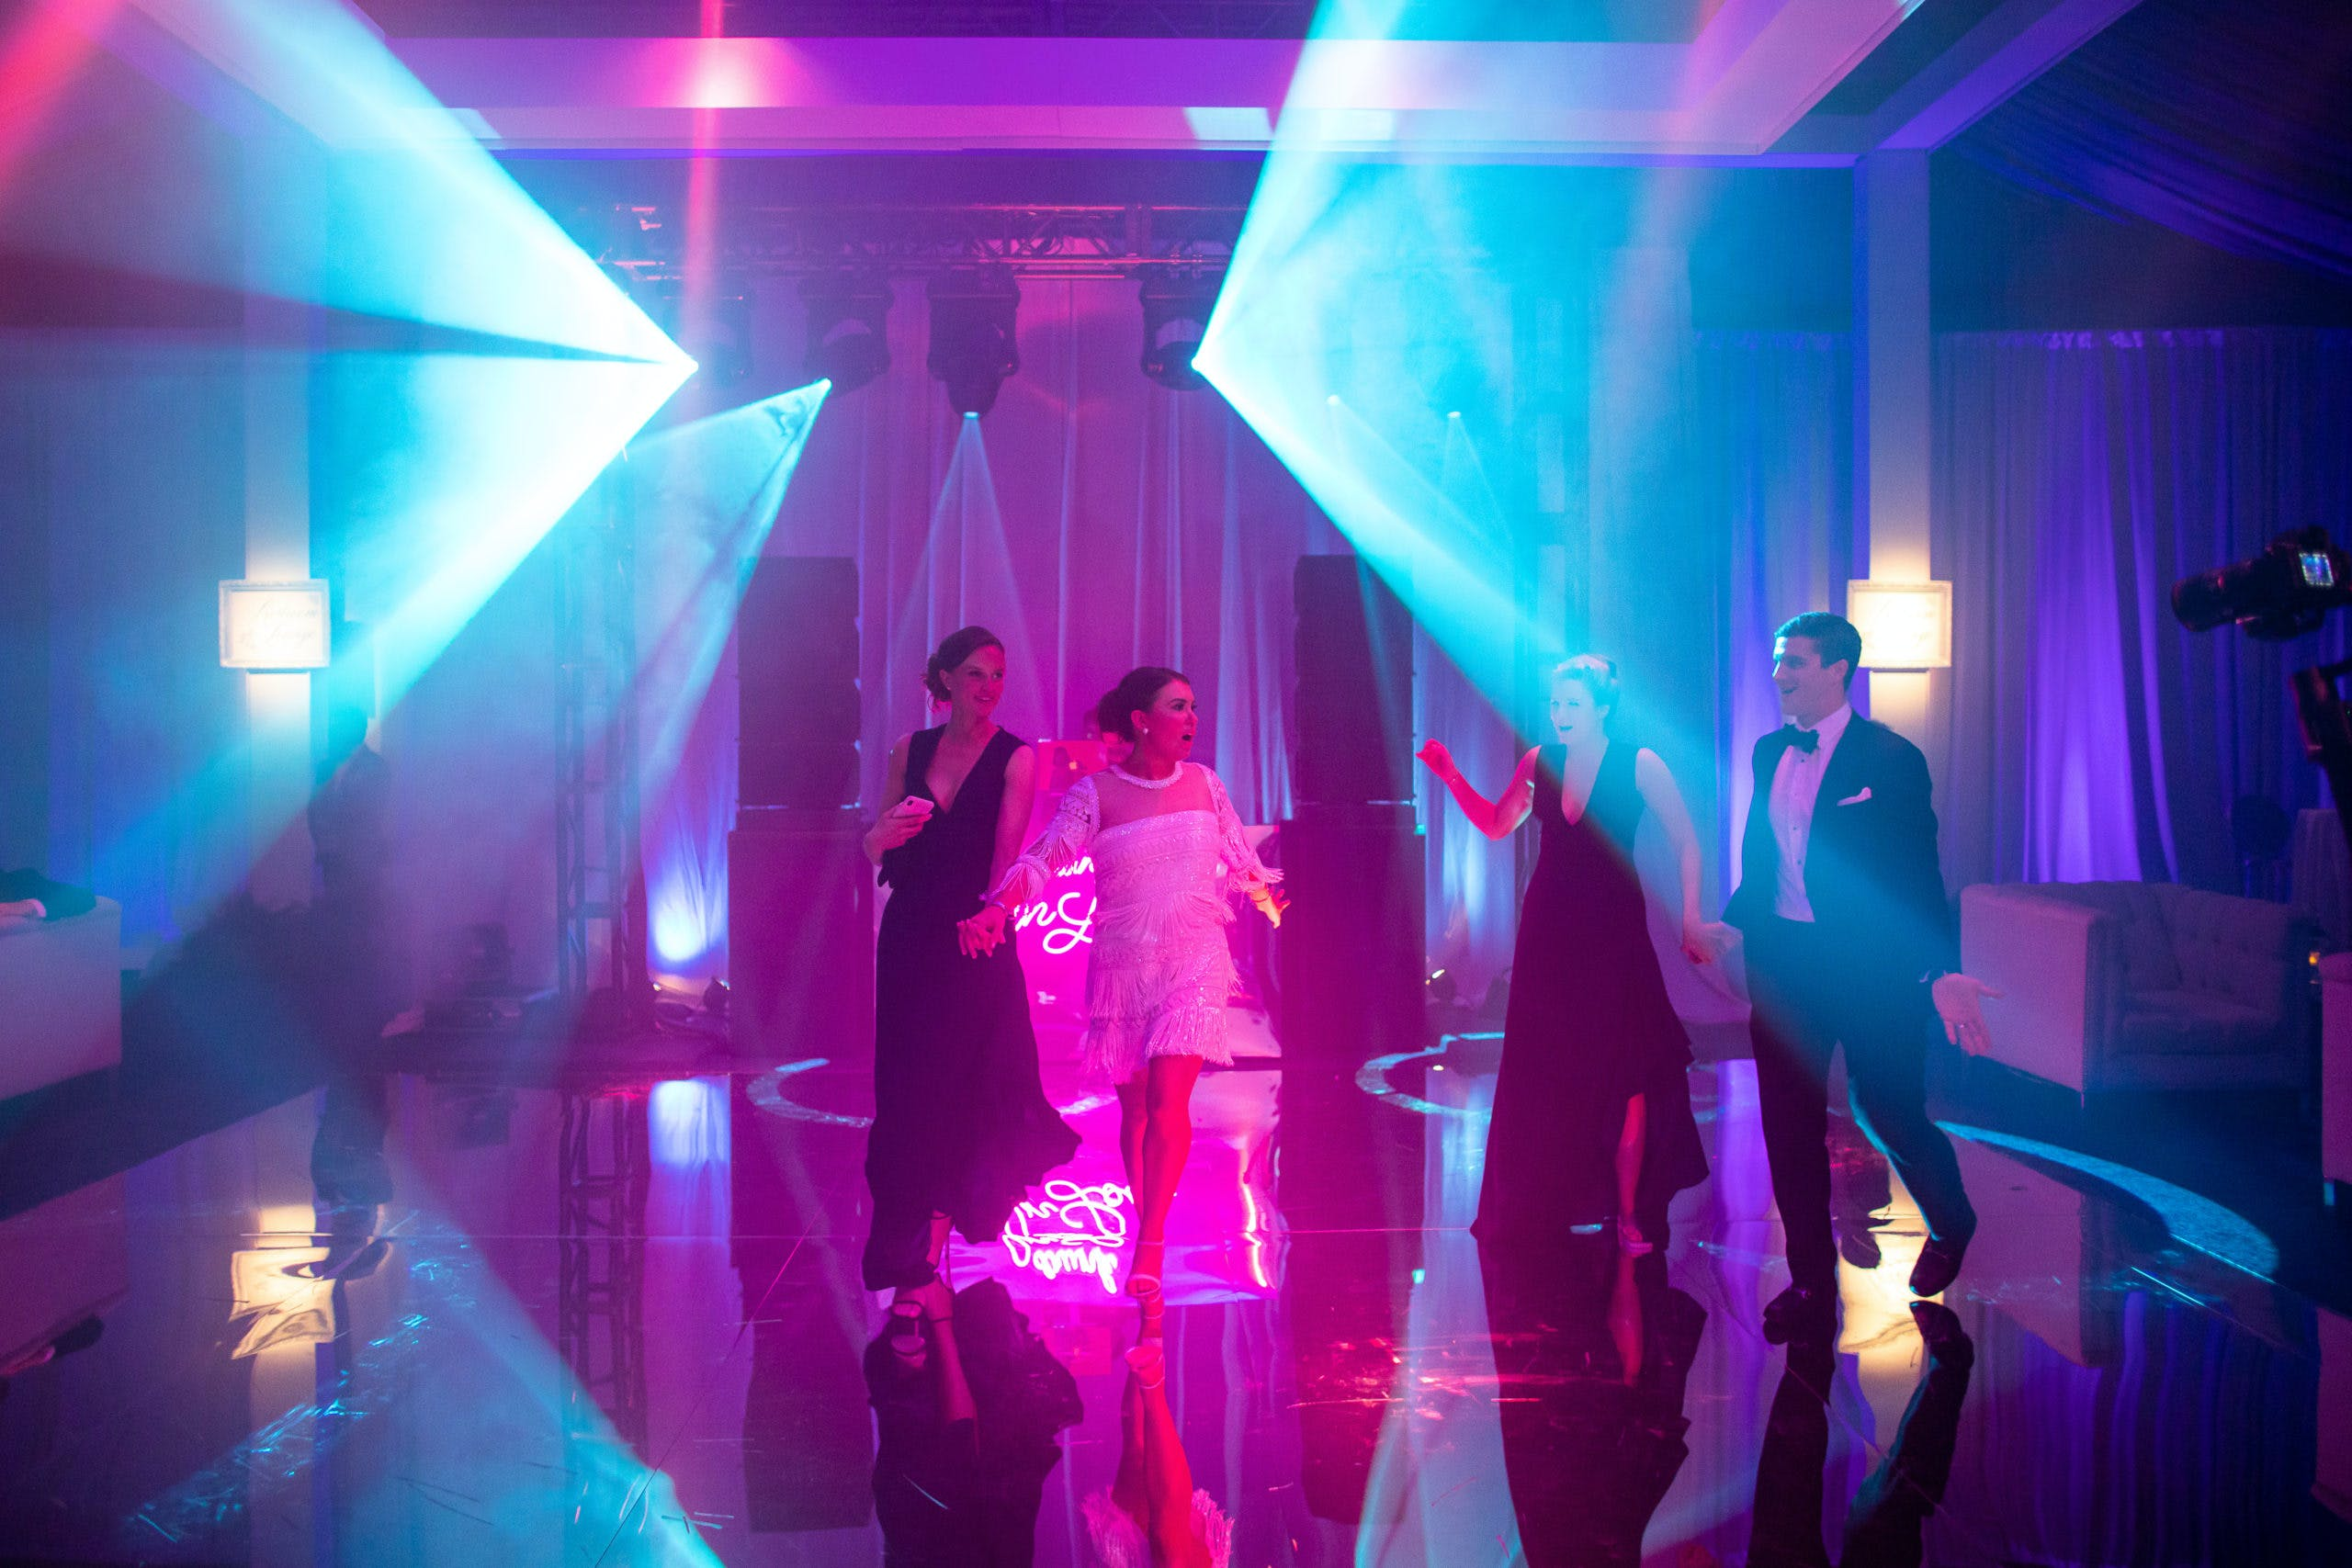 dramatic blue and purple neon lighting at wedding after-party   PartySlate